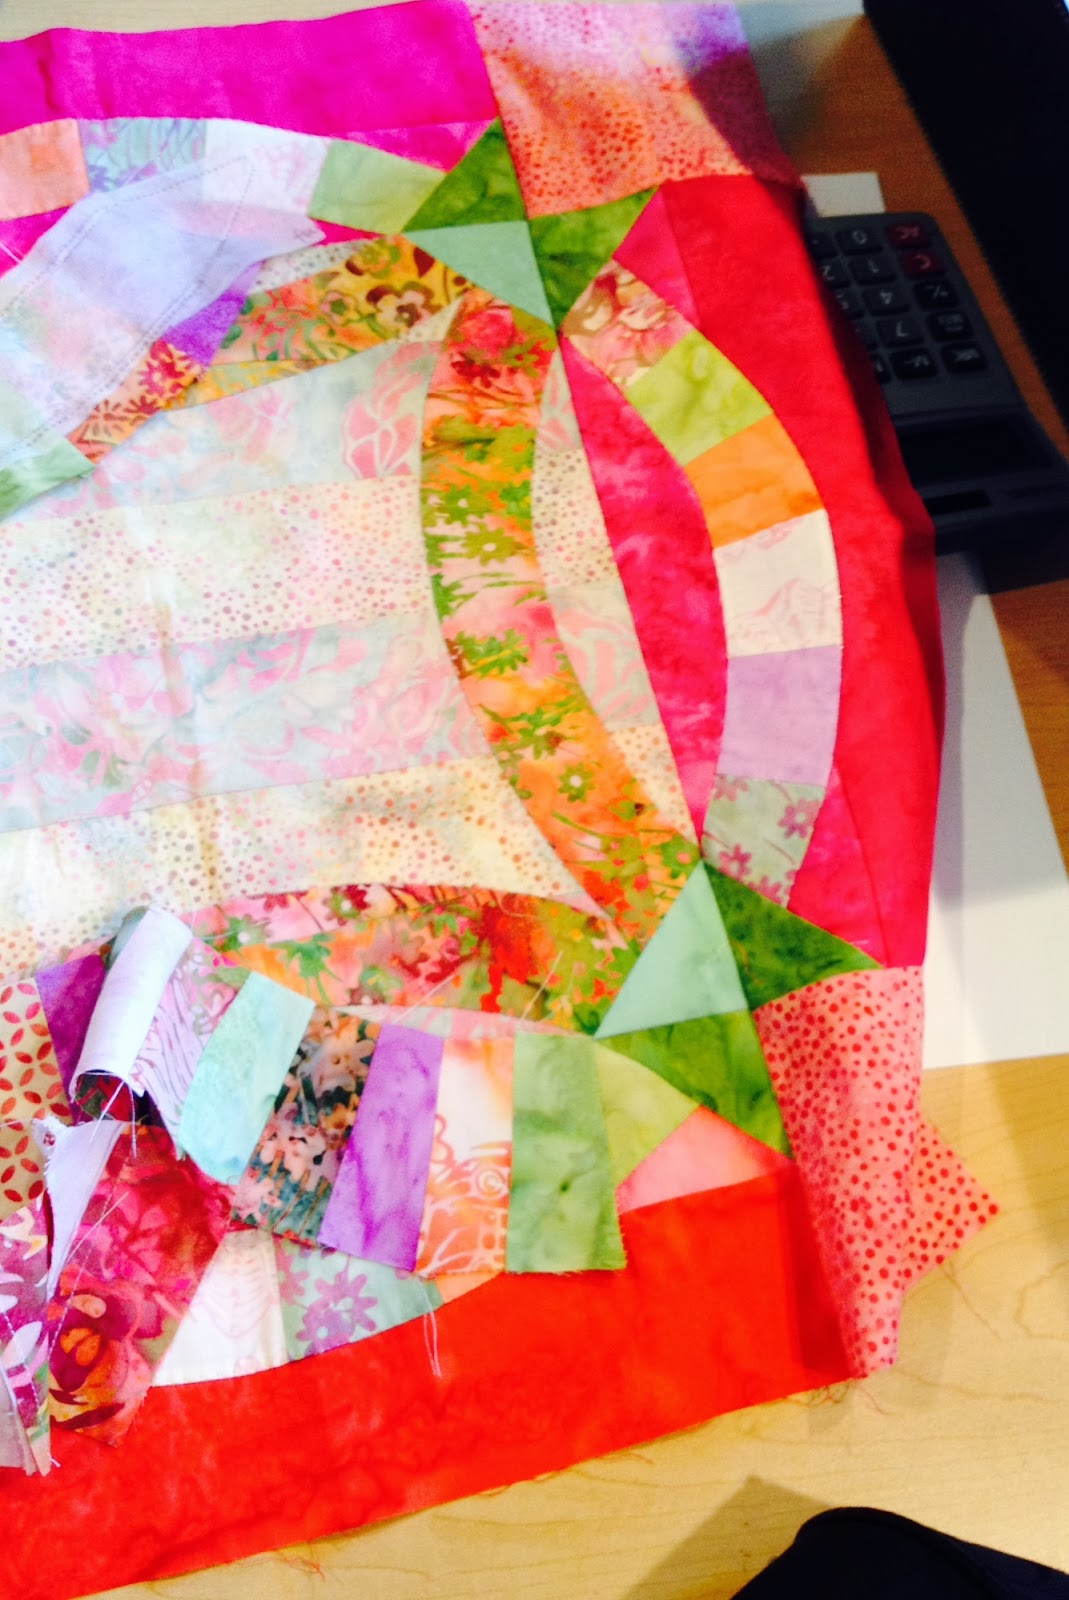 Quiltsmart: Jelly Rolls and the Quiltsmart Double Wedding Ring